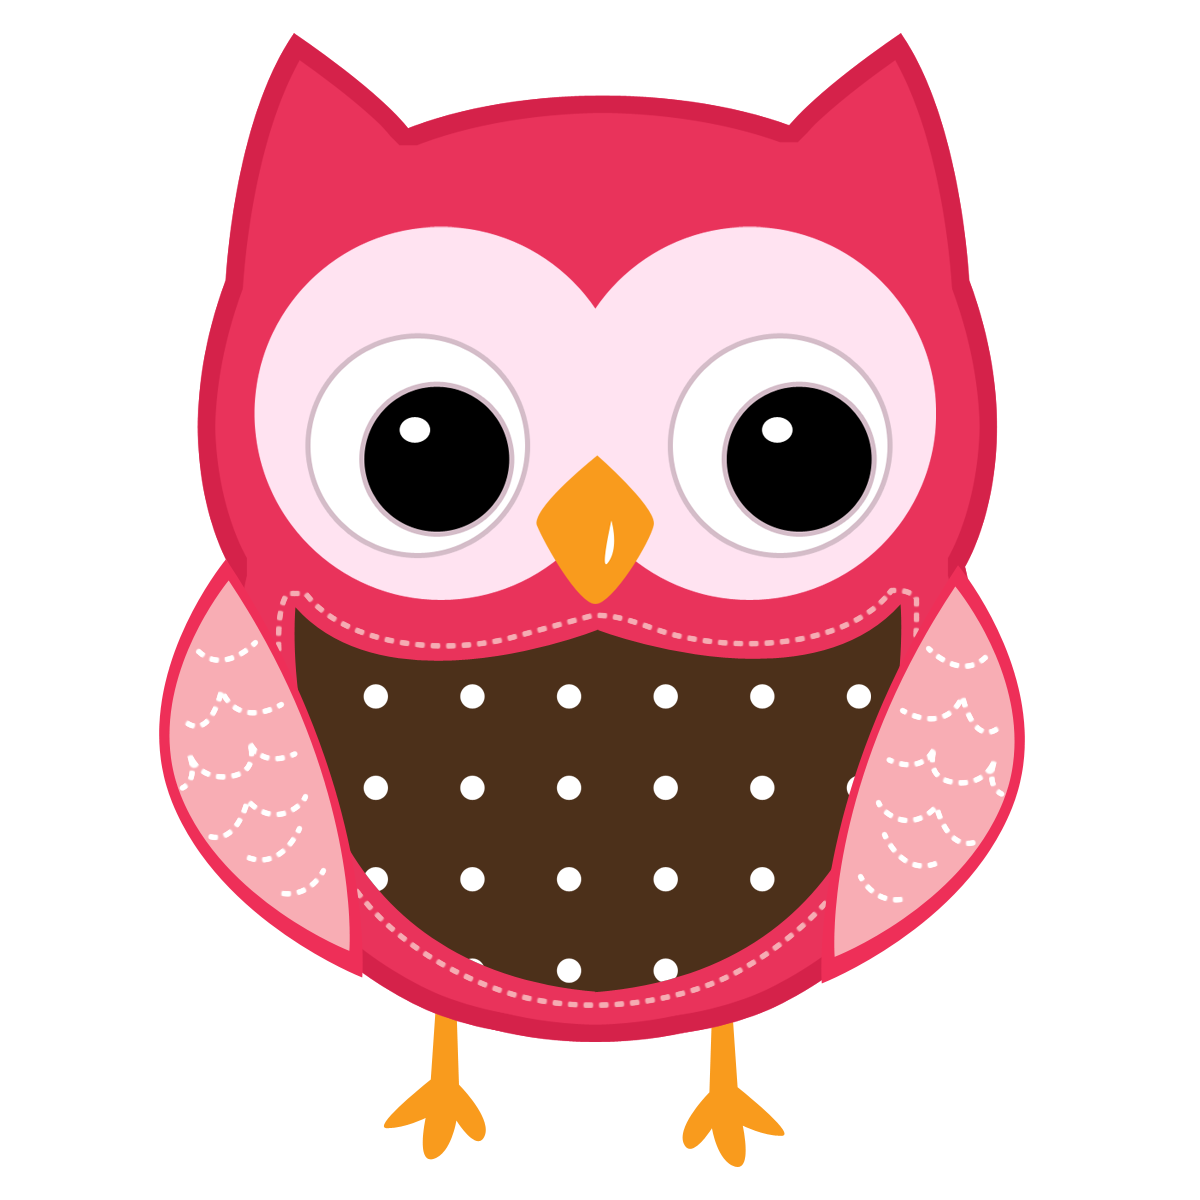 Owl cute clipart banner freeuse library Free Cute Owl Clipart, Download Free Clip Art, Free Clip Art ... banner freeuse library